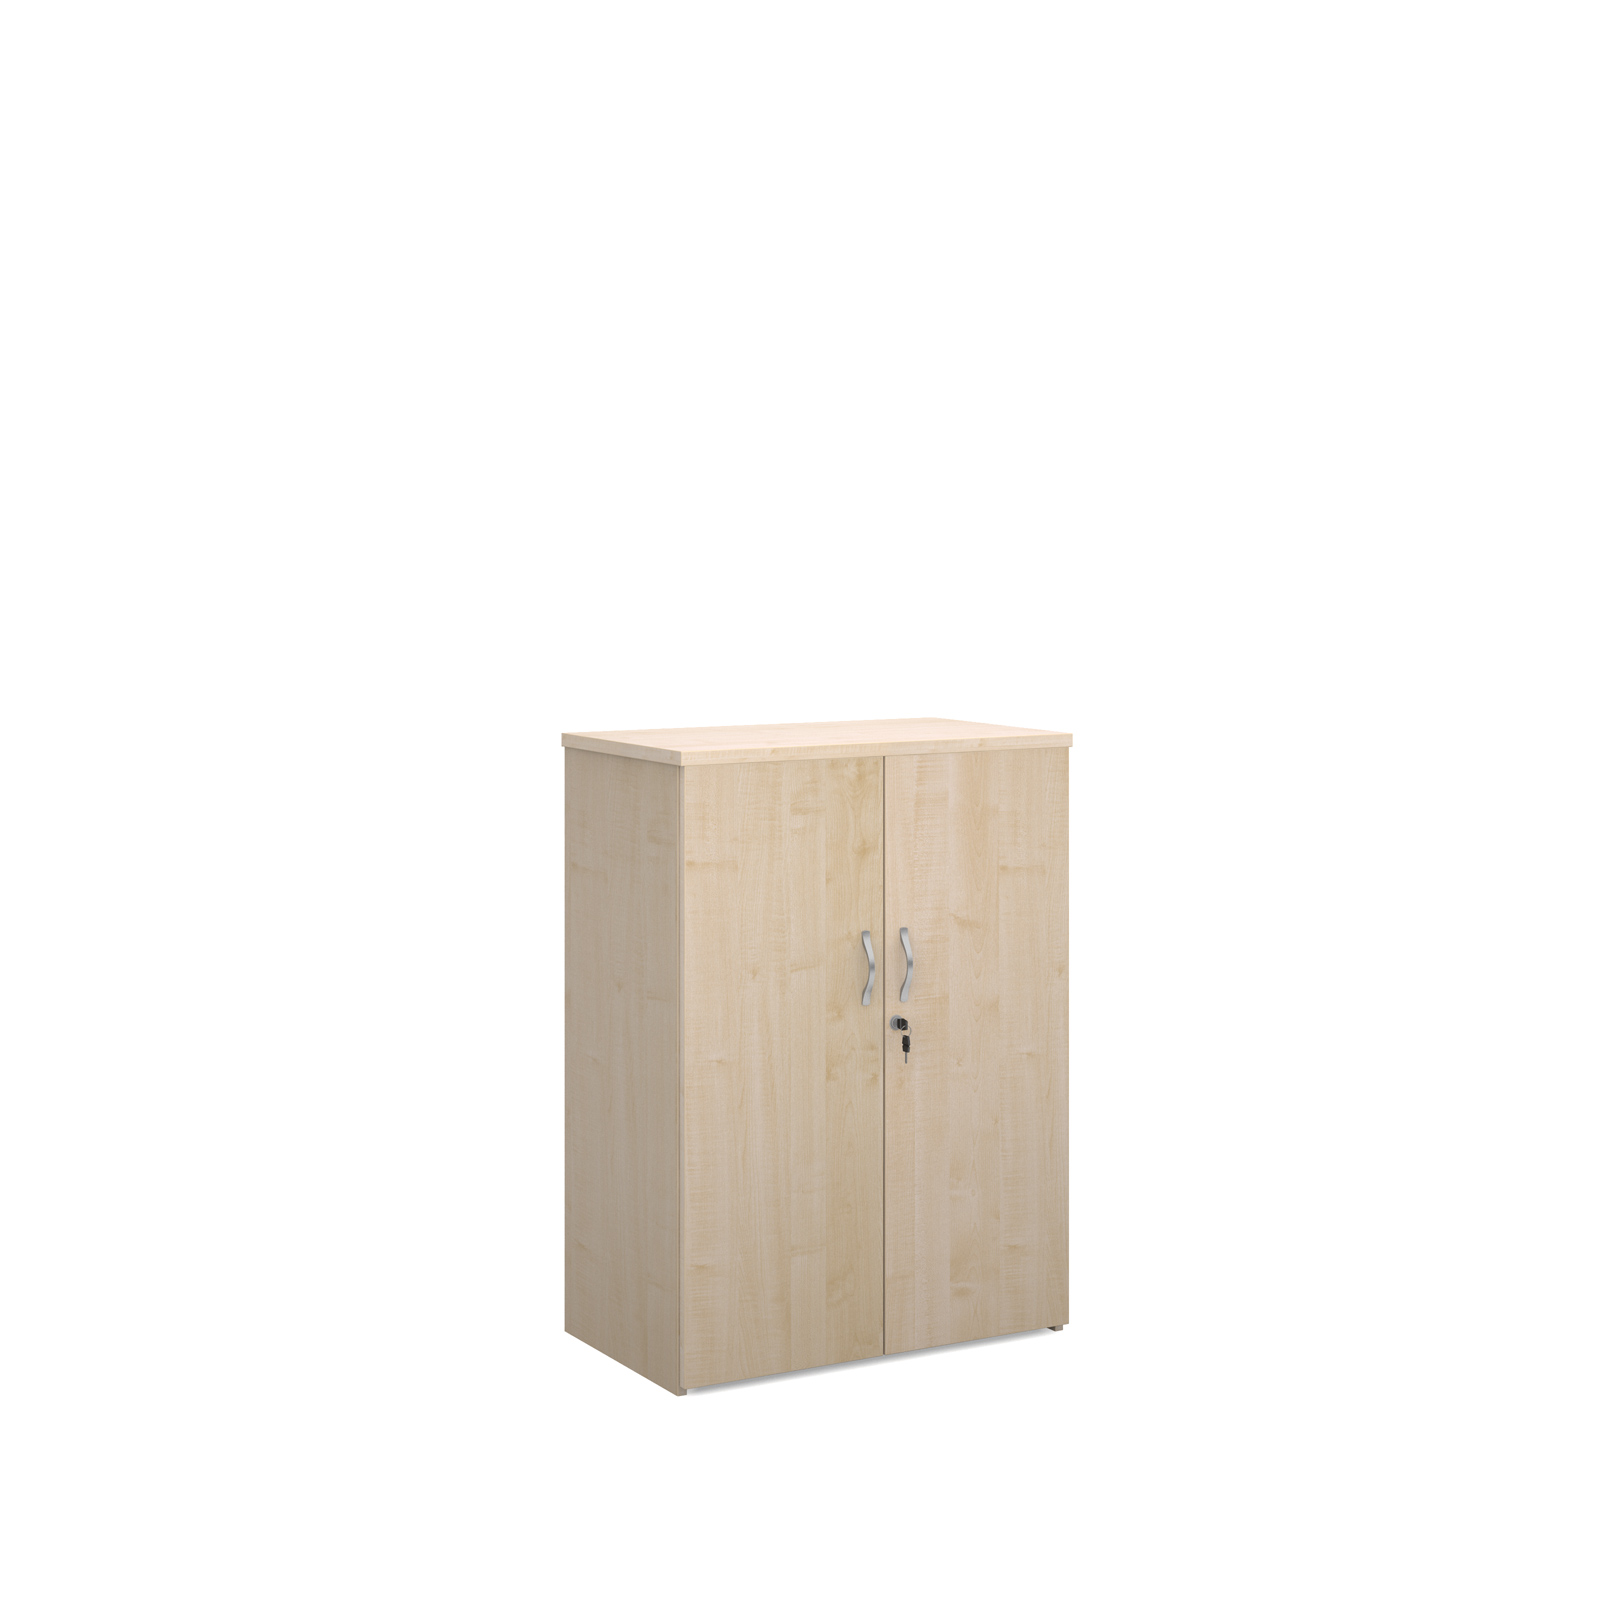 Up to 1200mm High Universal double door cupboard 1090mm high with 2 shelves - maple